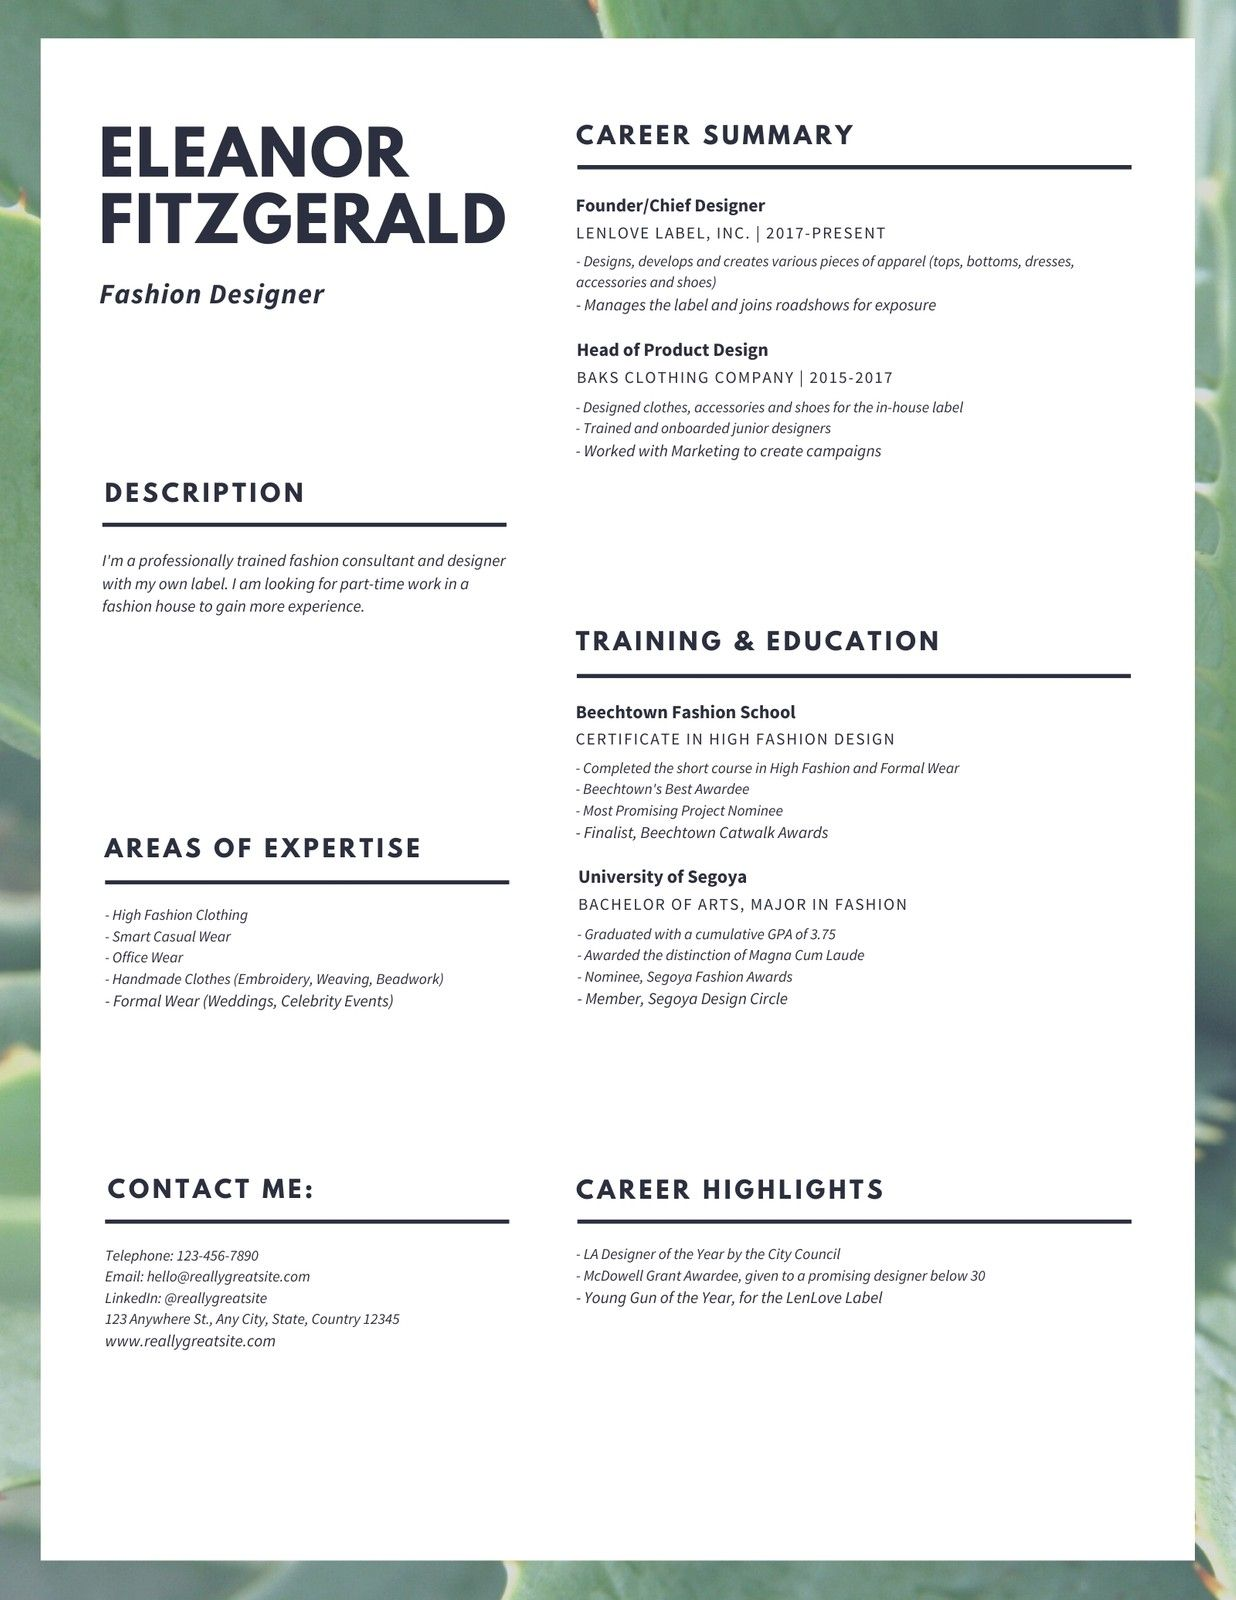 Lush Fashion Designer Resume Templates By Canva Ad Designer Ad Fashion Lush Canv In 2020 Fashion Designer Resume Resume Design Resume Template Professional